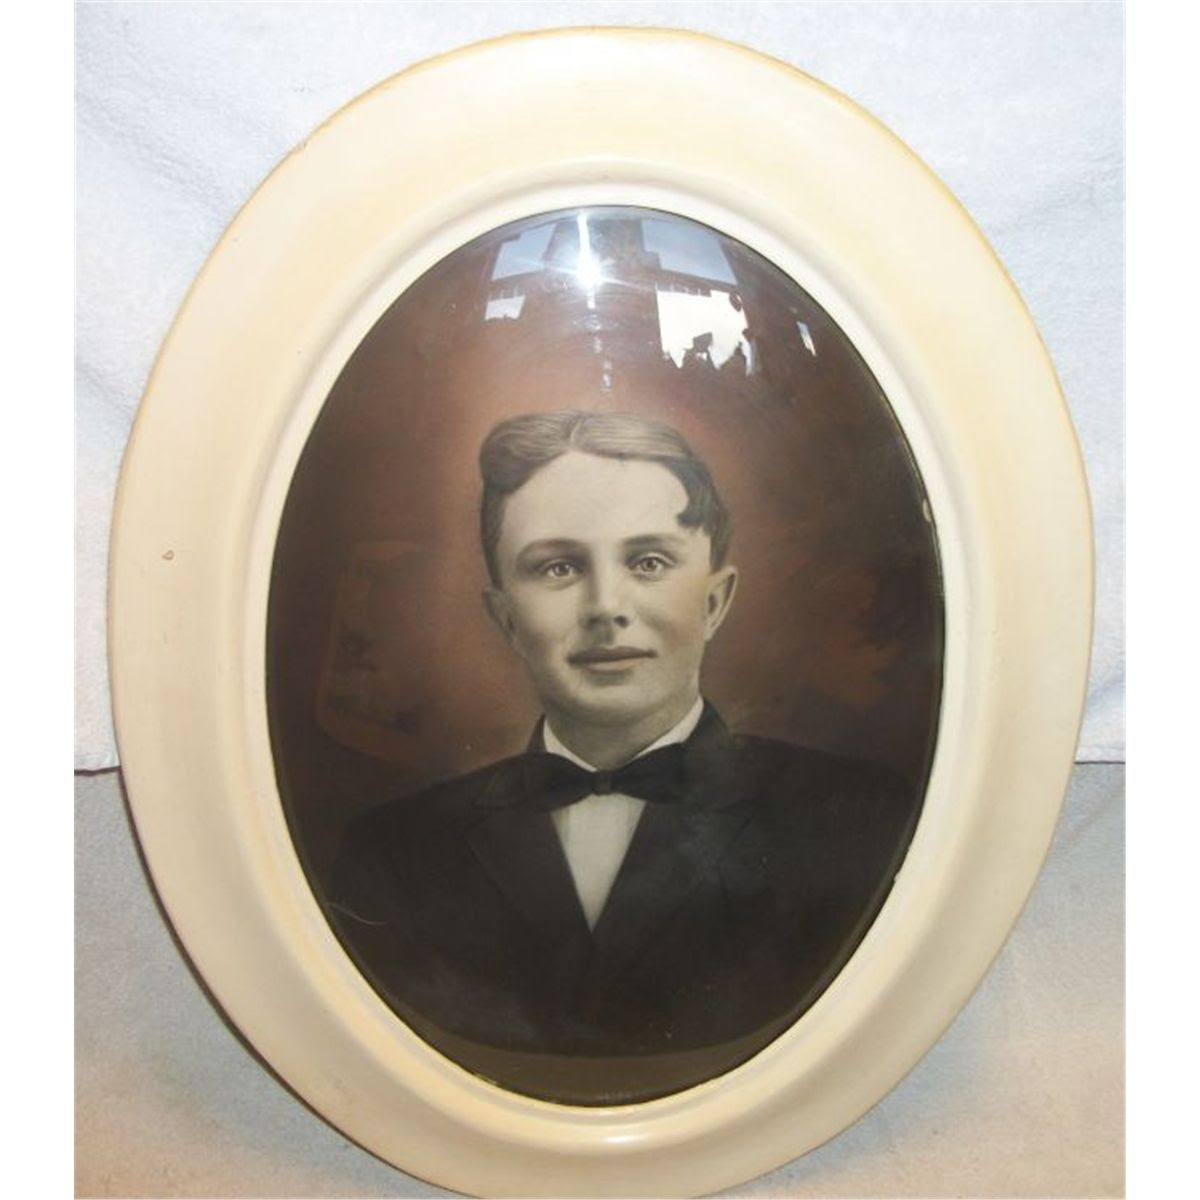 27 Portrait Of Male In Oval Convex Glass Frame 16w X 20t